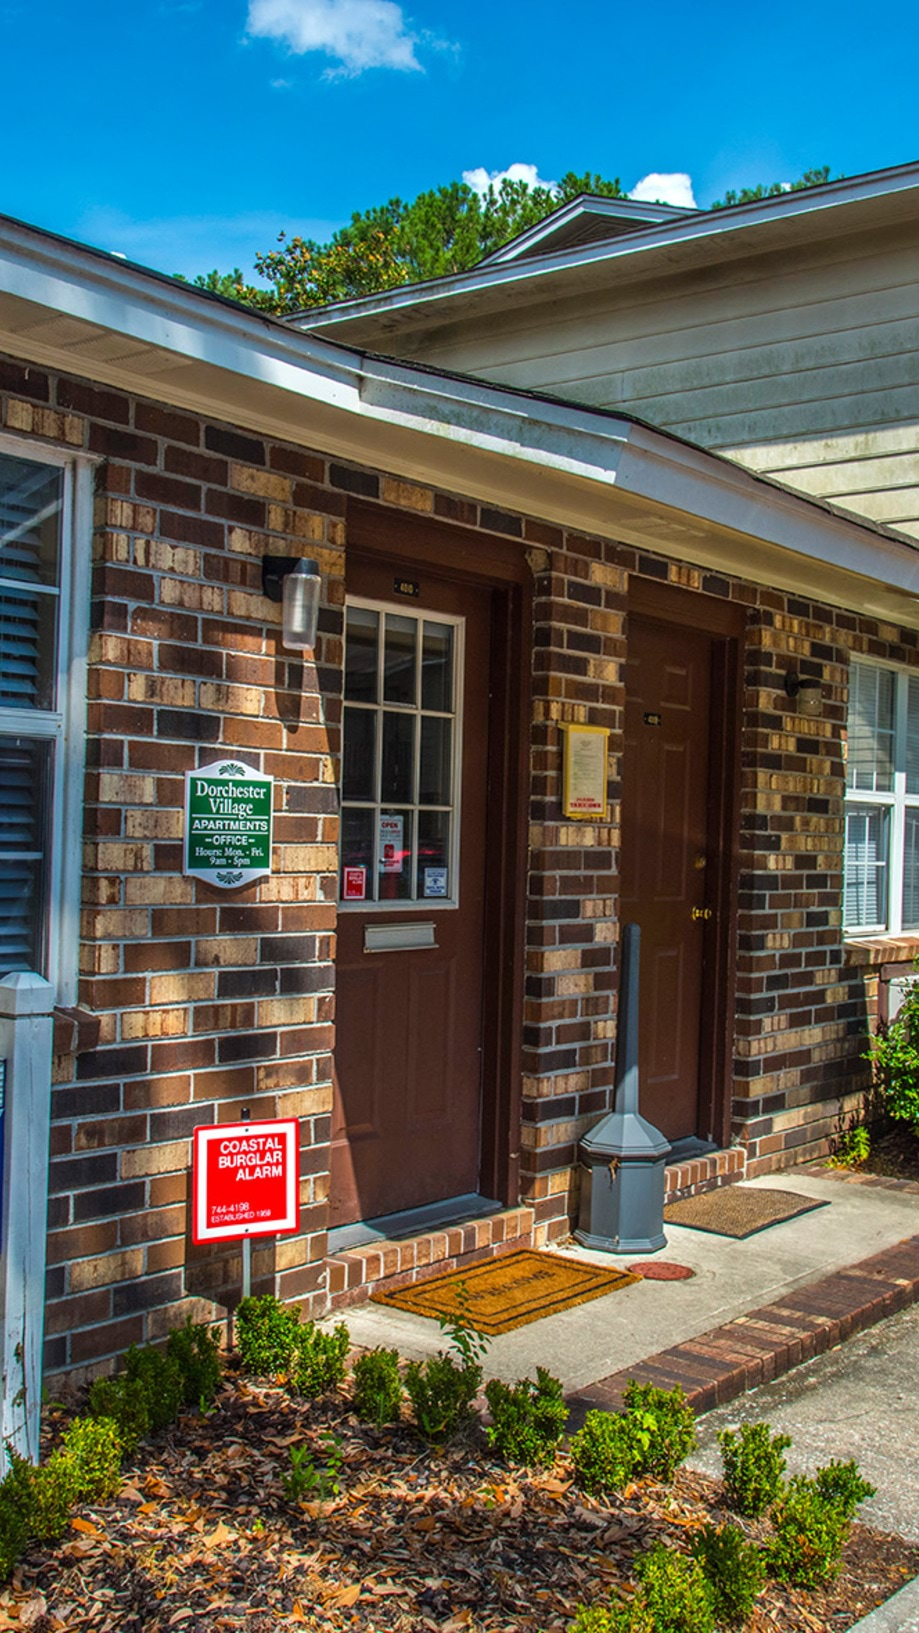 Apartments for Rent in North Charleston, SC   Dorchester Village - Home